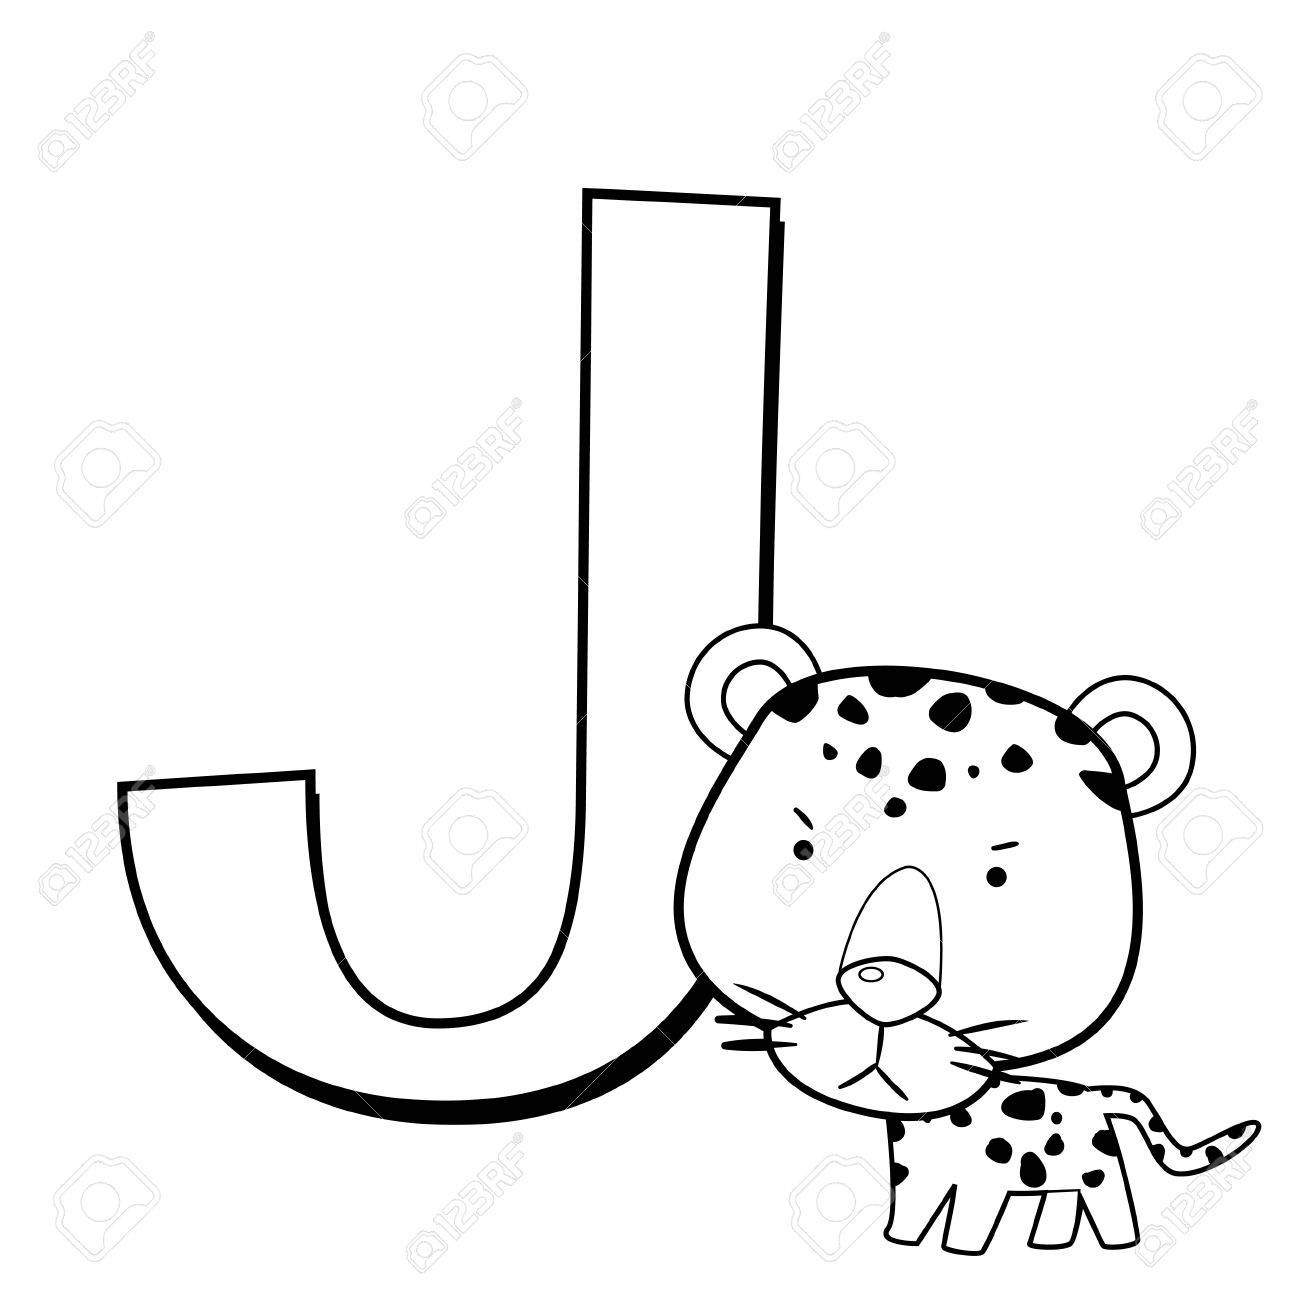 coloring alphabet for kids j with jaguar royalty free cliparts